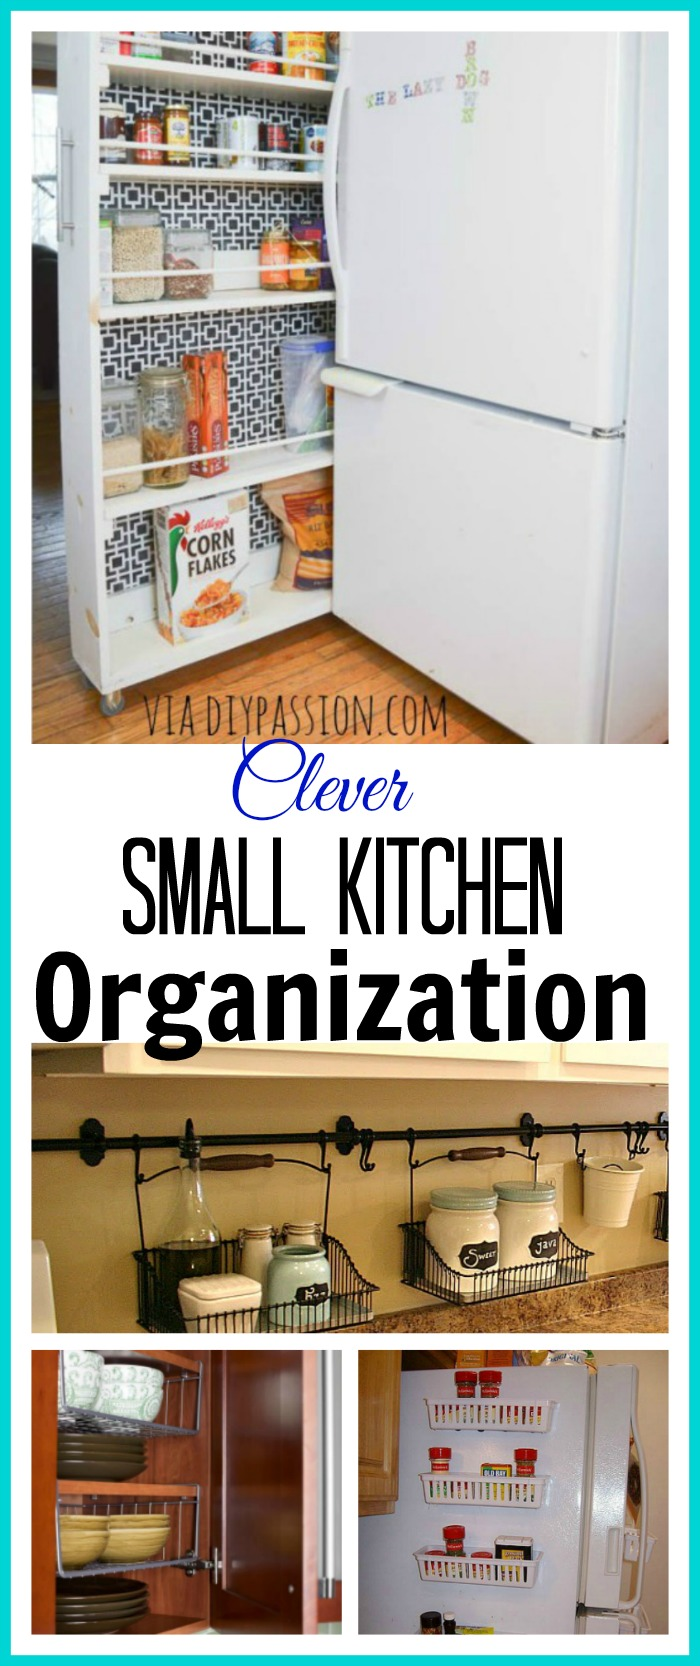 10 Ideas For Organizing a Small Kitchen- A Cultivated Nest on organizing bedroom ideas, organizing a tiny house, organizing a small bathroom ideas,